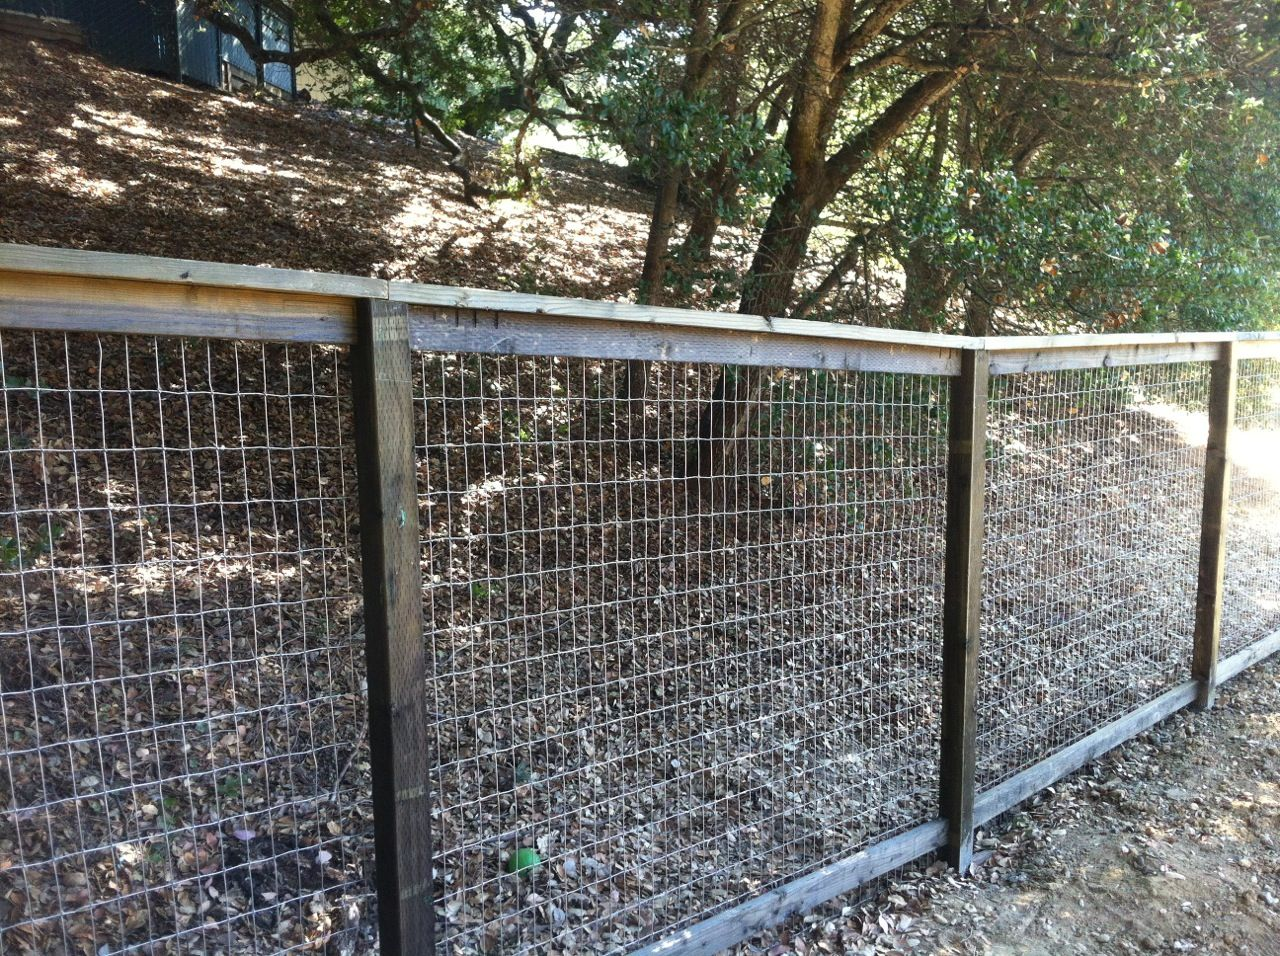 Pin by Renee Usher on Fencing   Pinterest   Fences, Arbors and Cheap ...